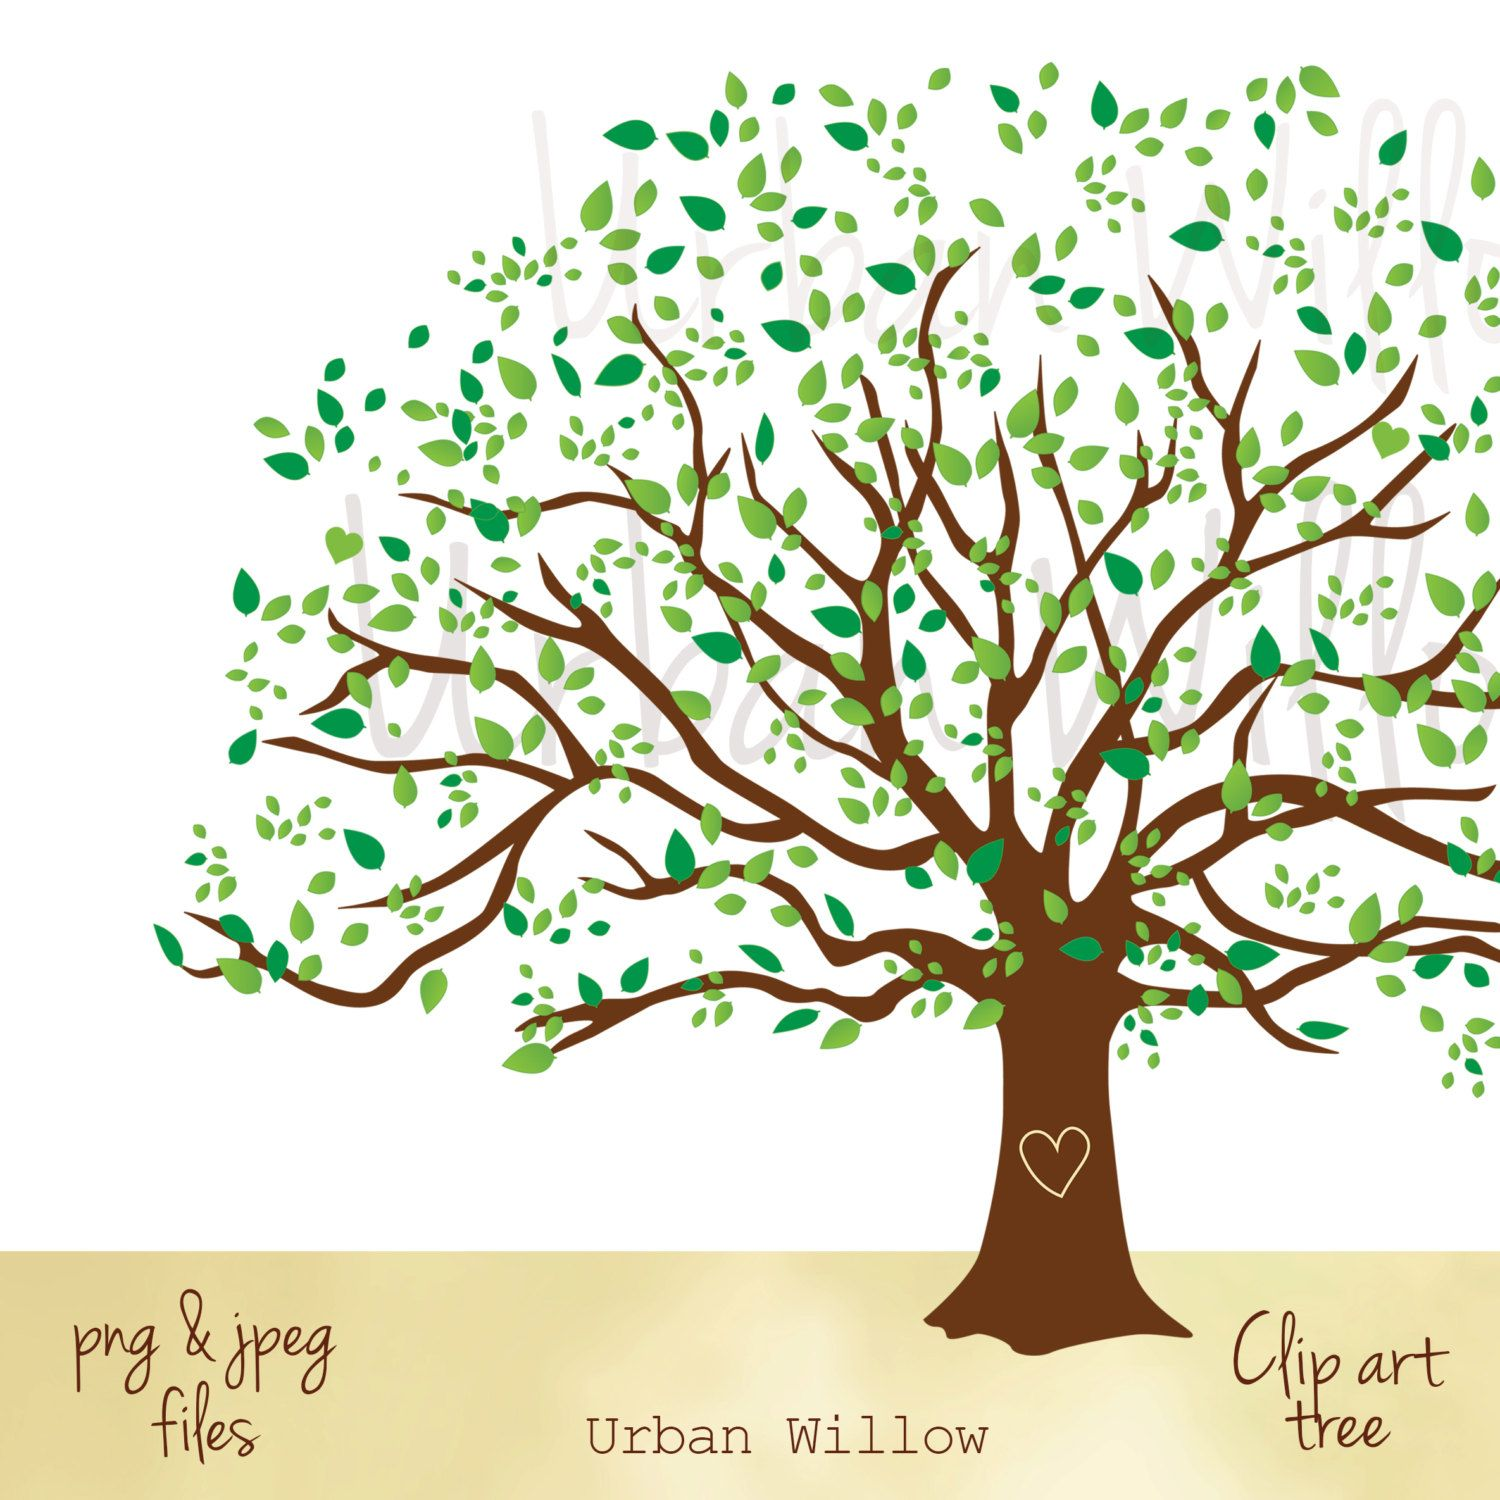 medium resolution of tree graphic flame tree willow tree wedding tree clipart green trees